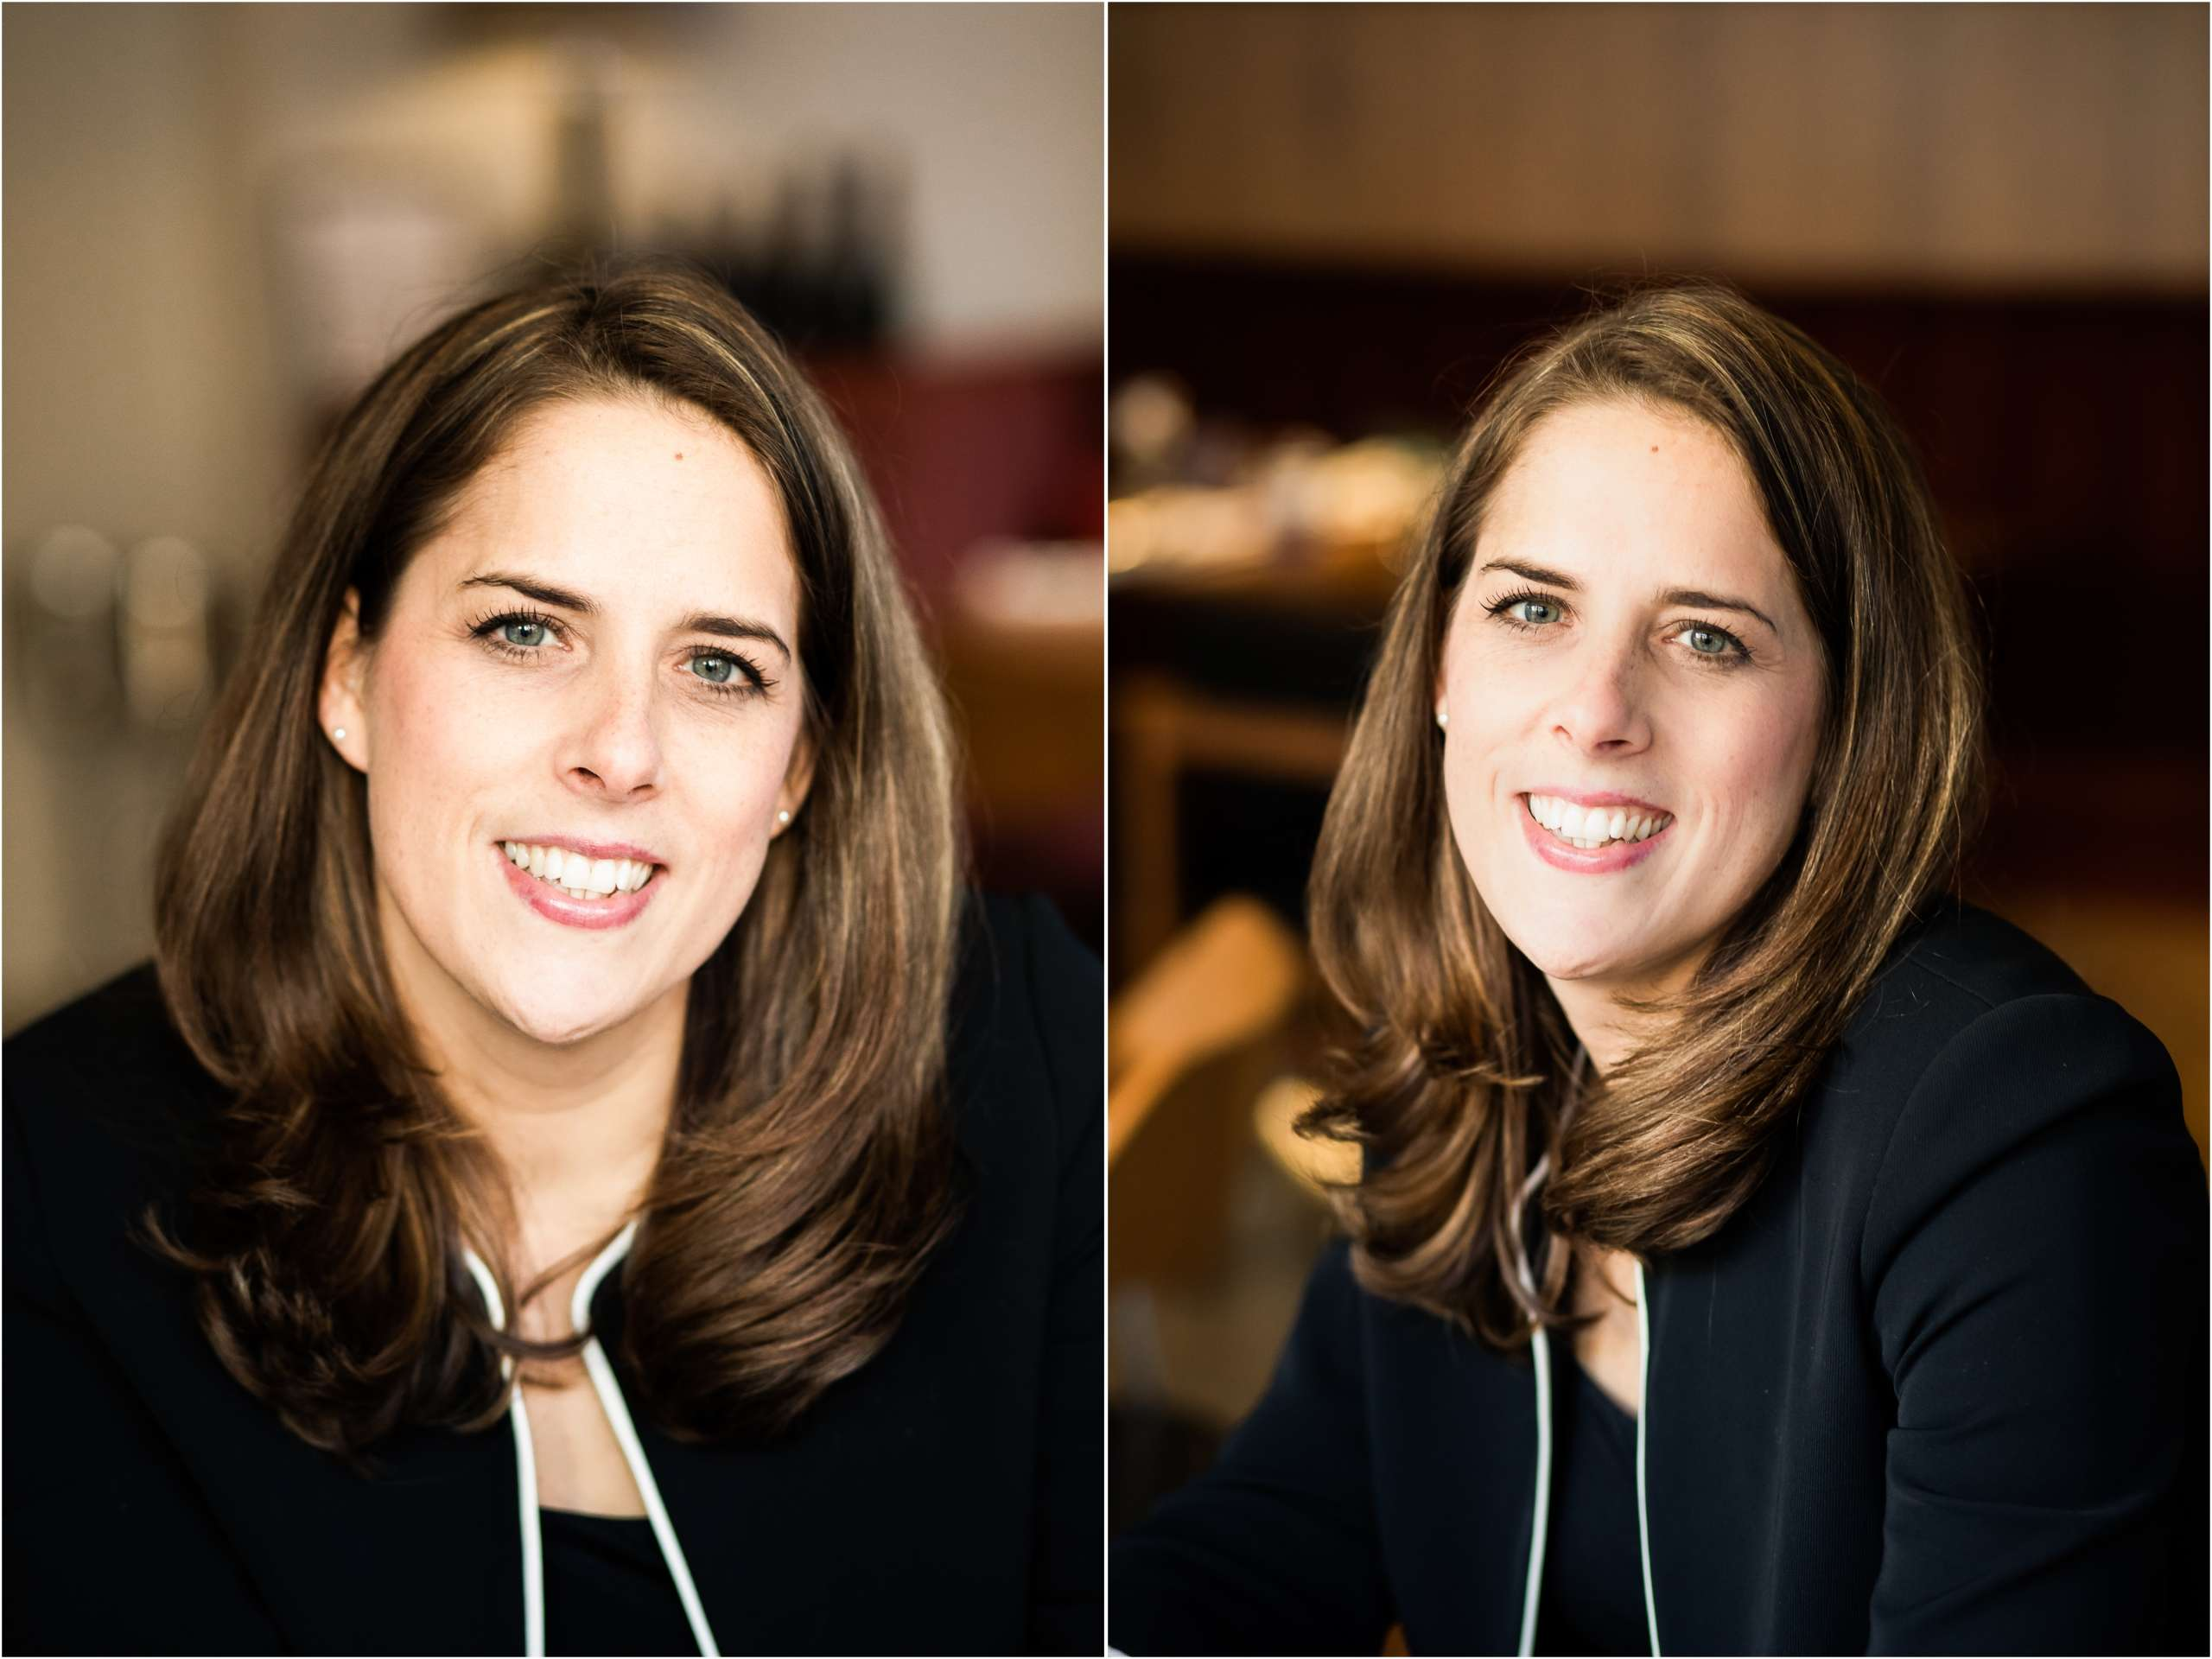 Two headshot portrait photos of a female professional, taken in Chichester, West Sussex